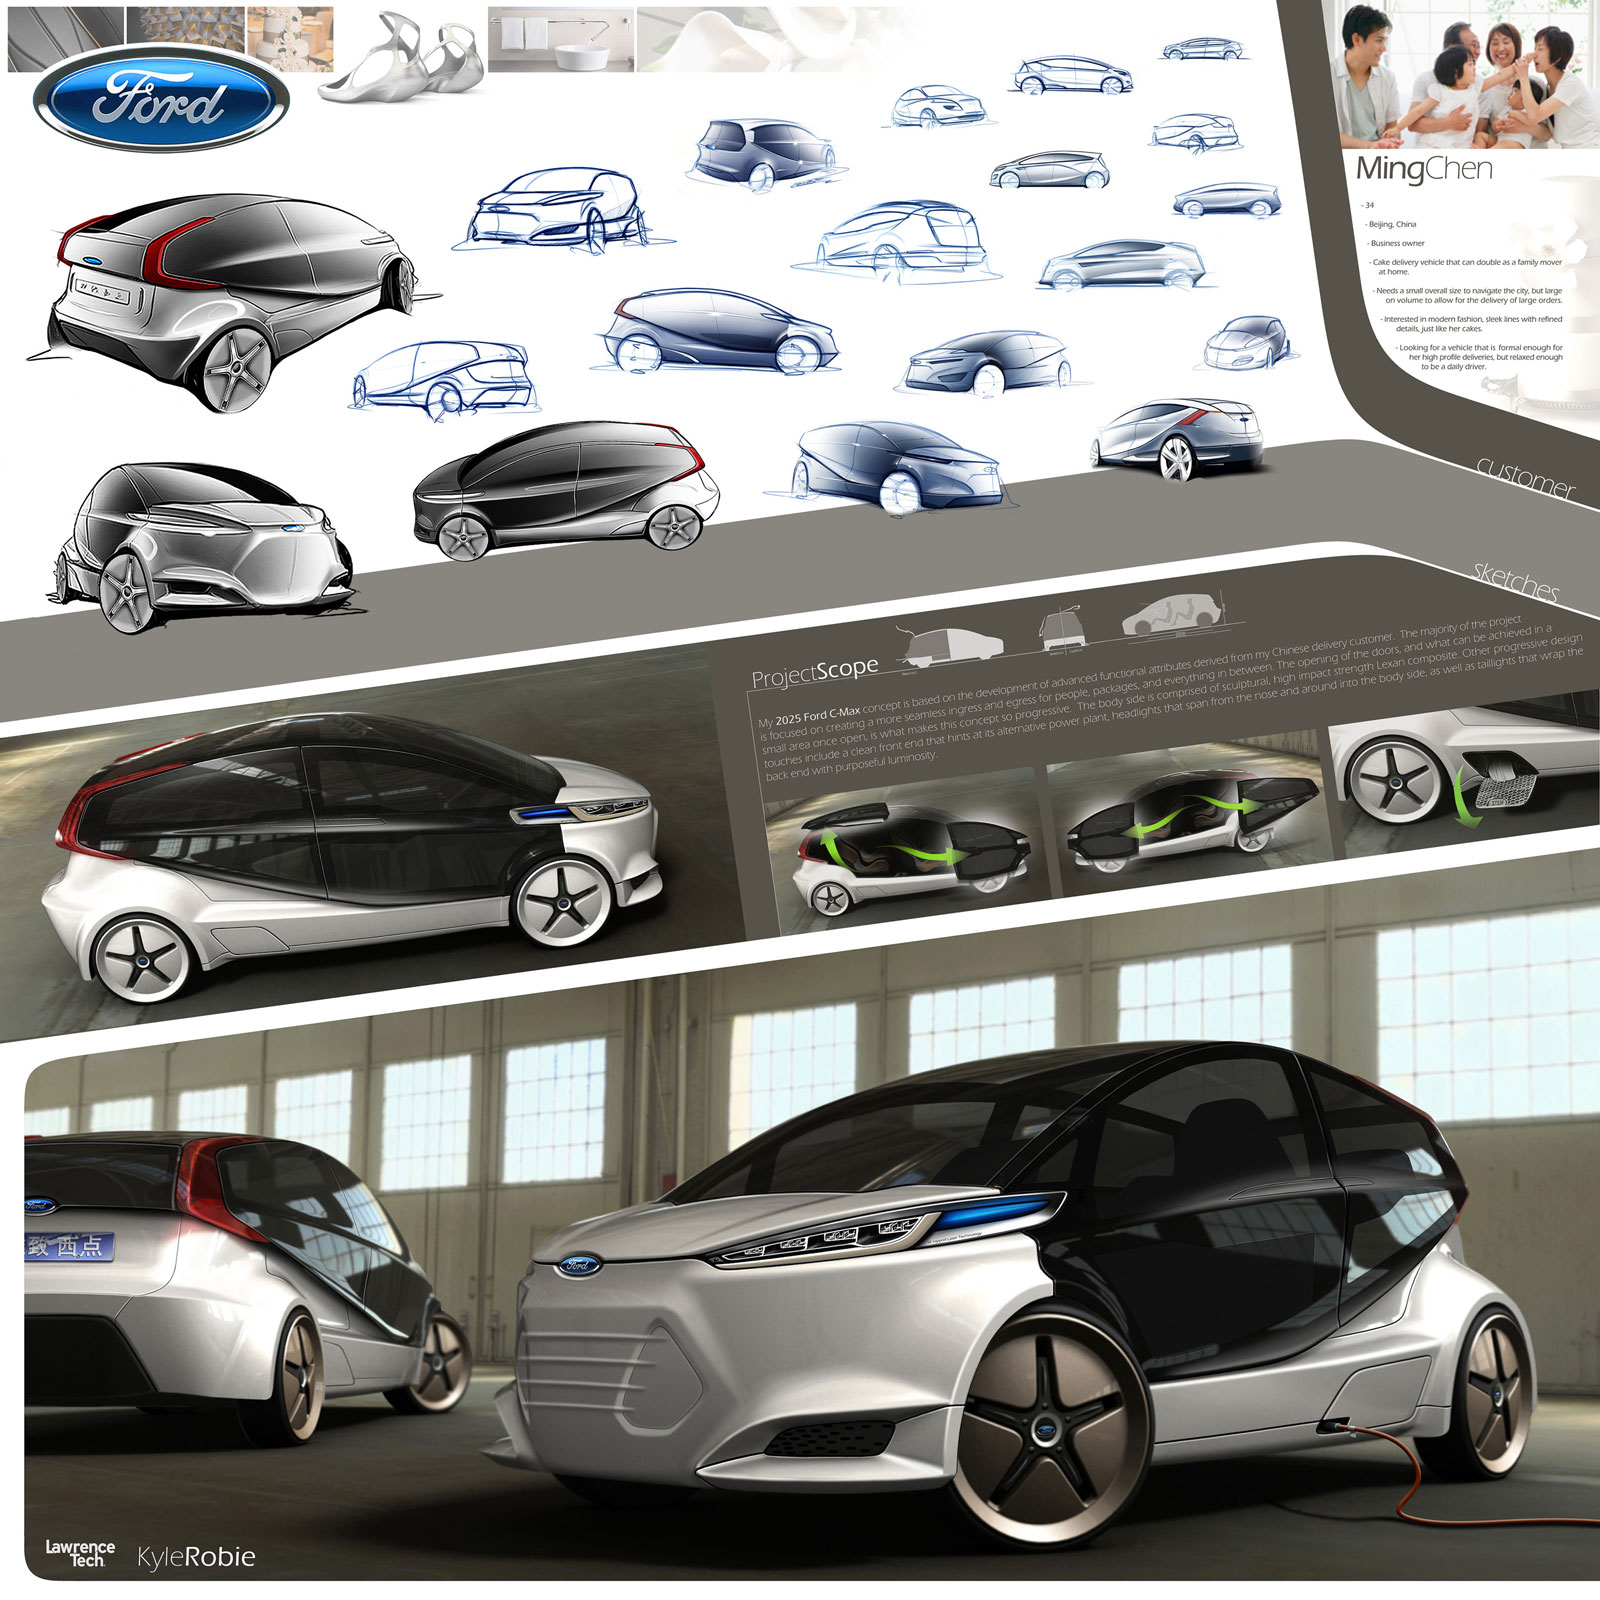 2025 Ford C-MAX Concept By Kyle Robie